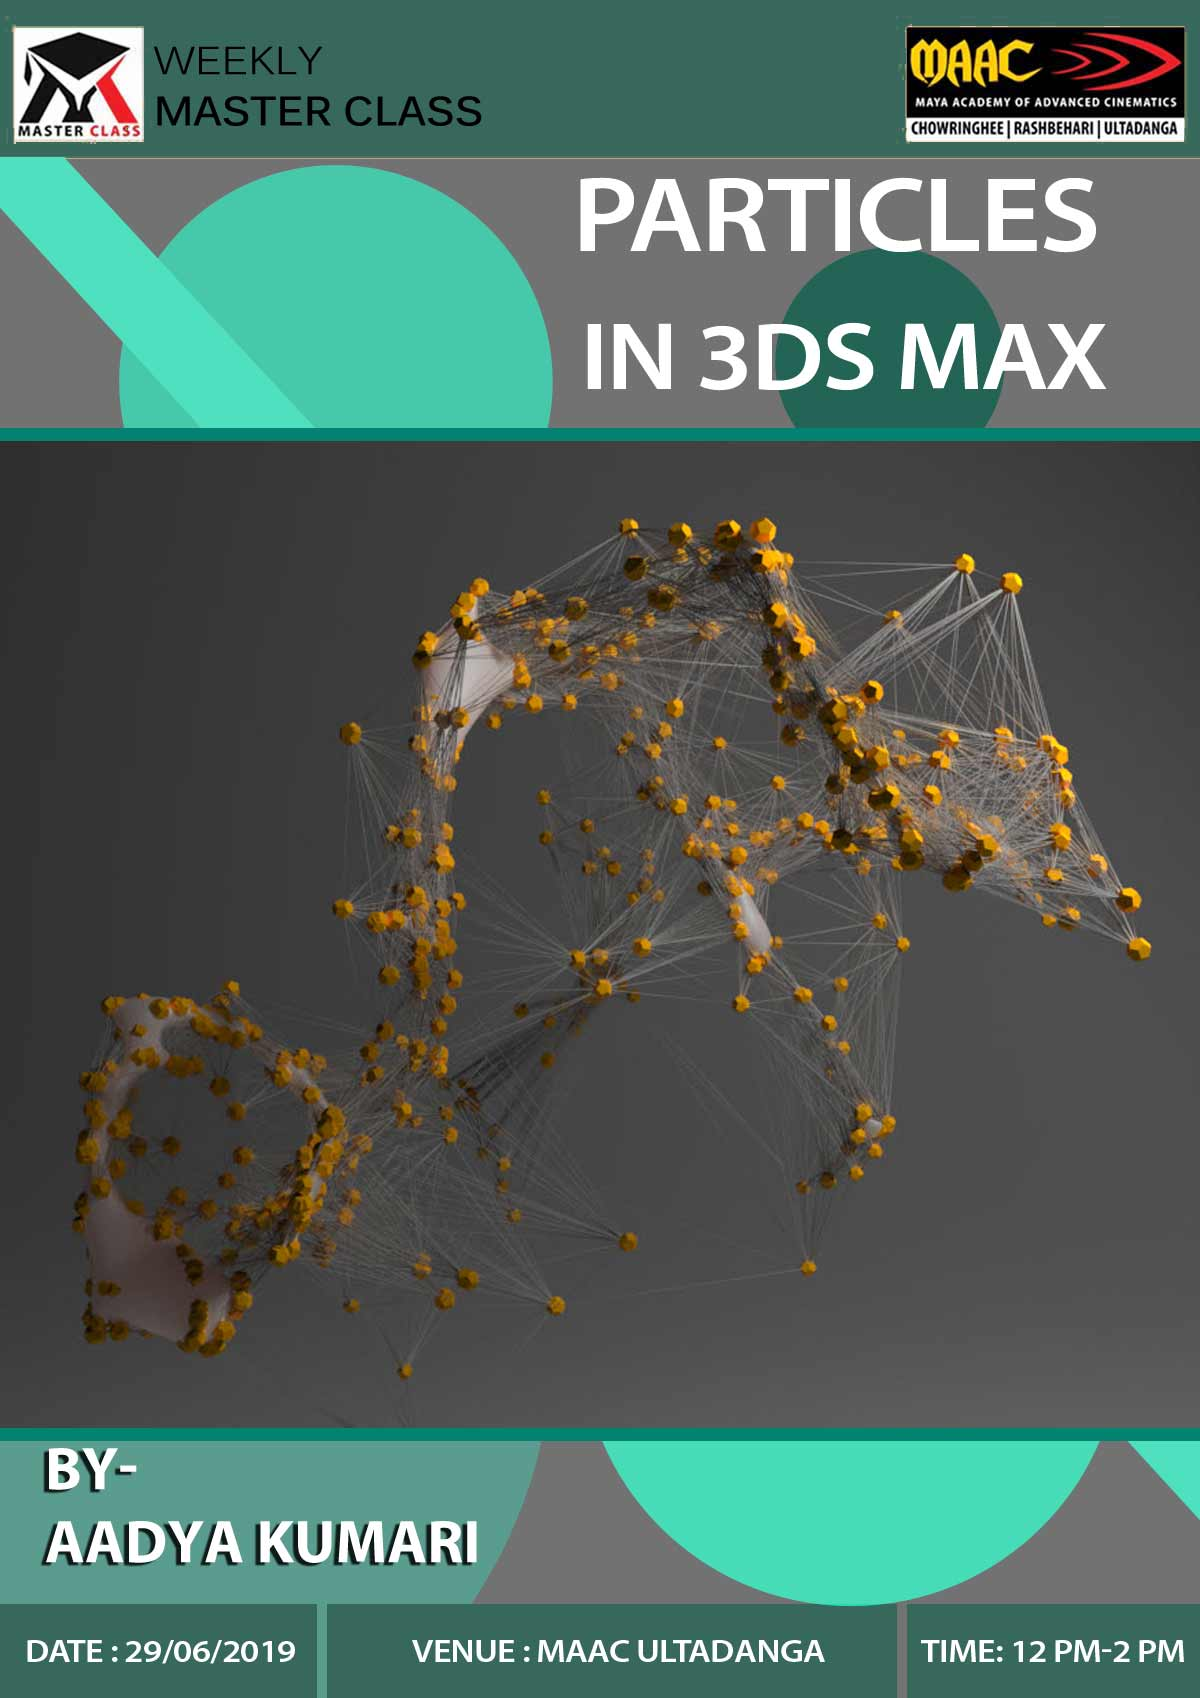 Weekly Master Class on Particles in 3Ds Max